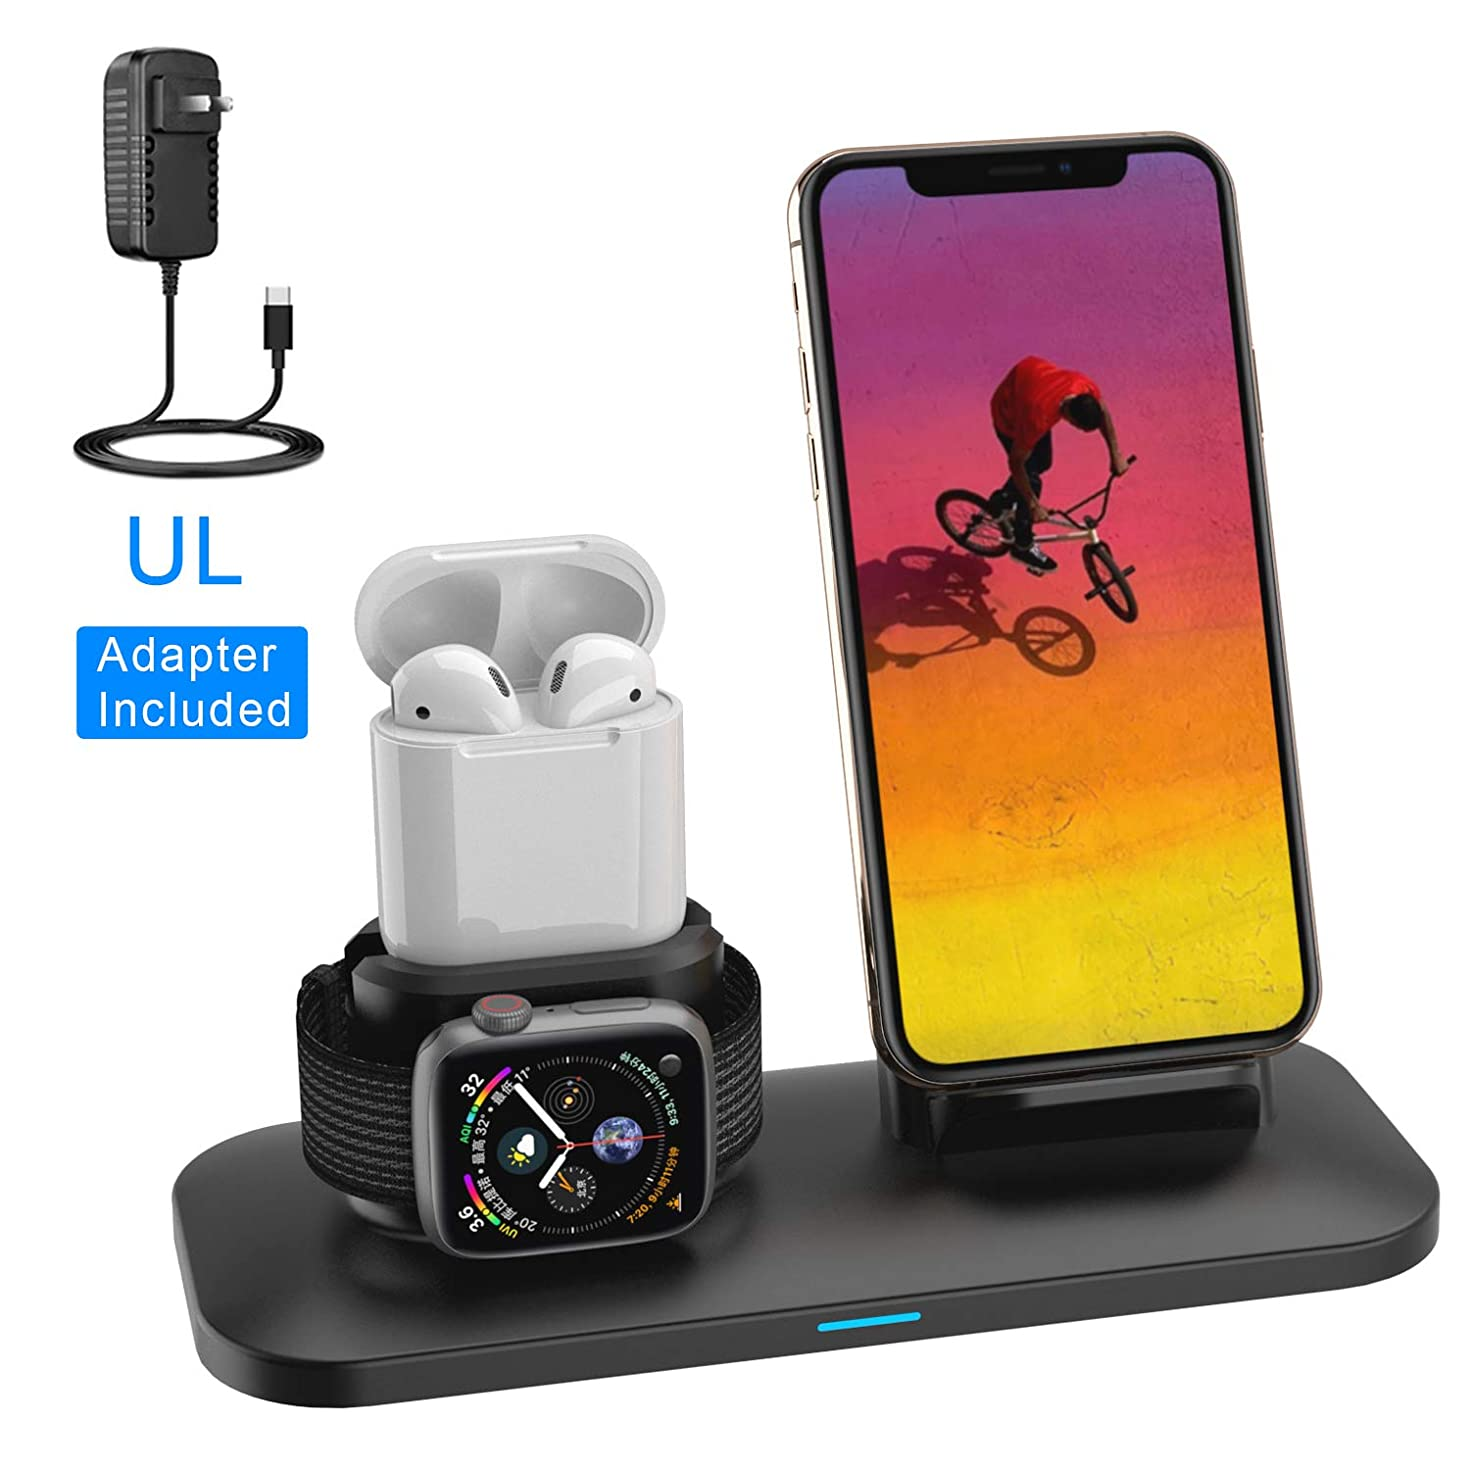 Wireless Charger, 3 in 1 Wireless Charging Stand for Apple Watch and iPhone Airpods, Wireless Charging Station Apple Watch Charger for iPhone X/XS/XR/Xs Max/8/8 Plus Apple Watch 4 3 2 1 Airpods 1 2